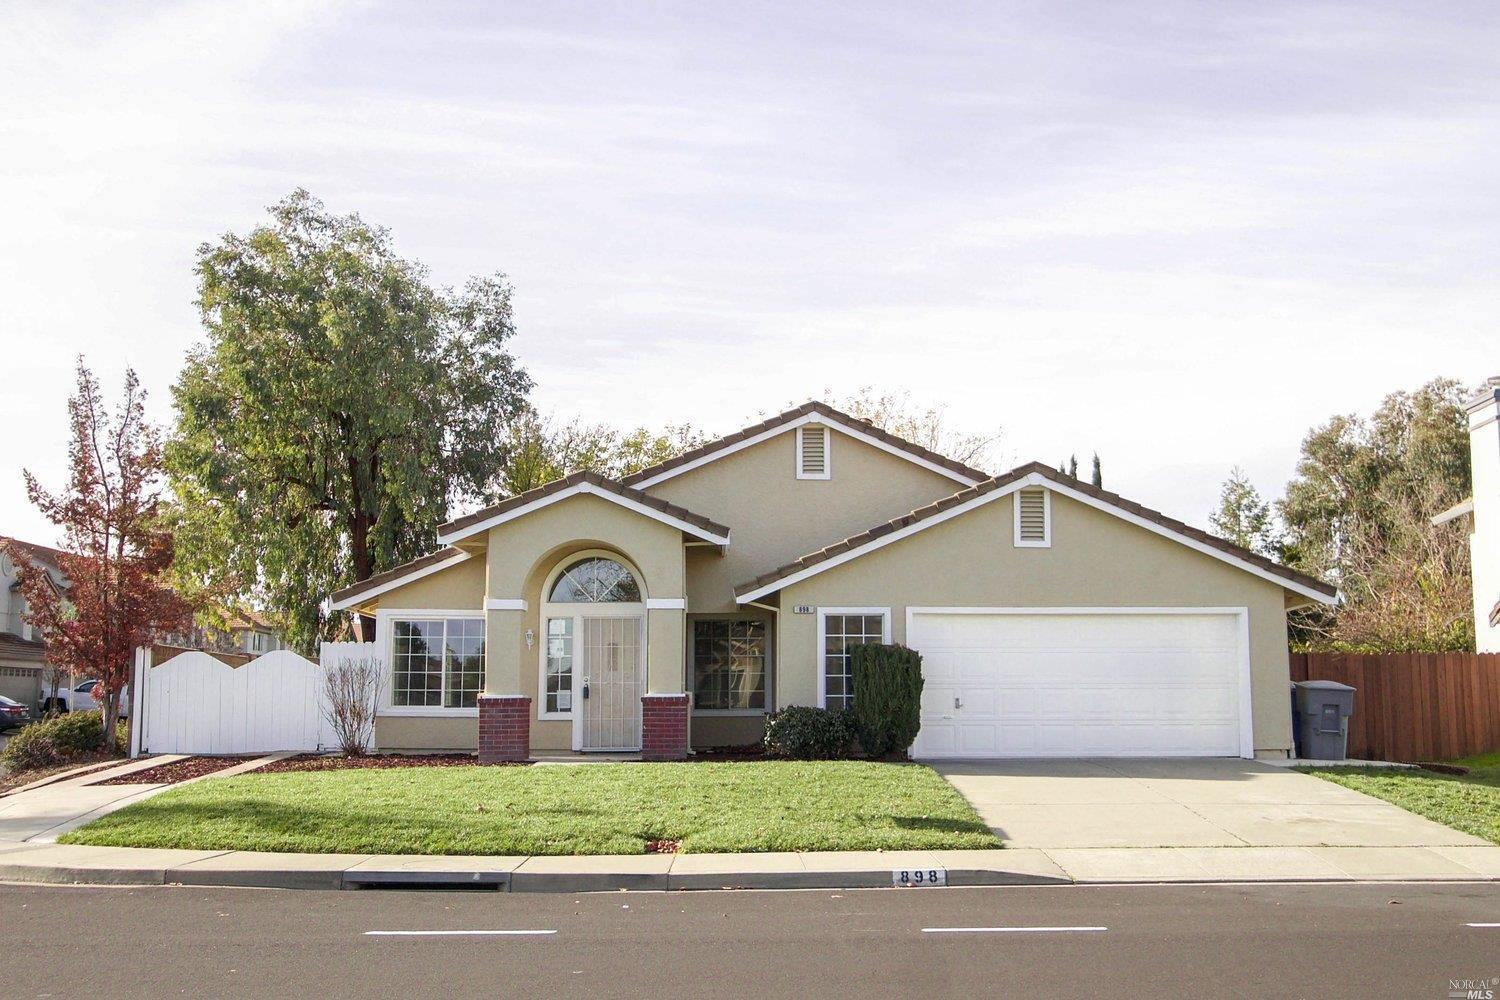 898 Christine Dr., Vacaville*